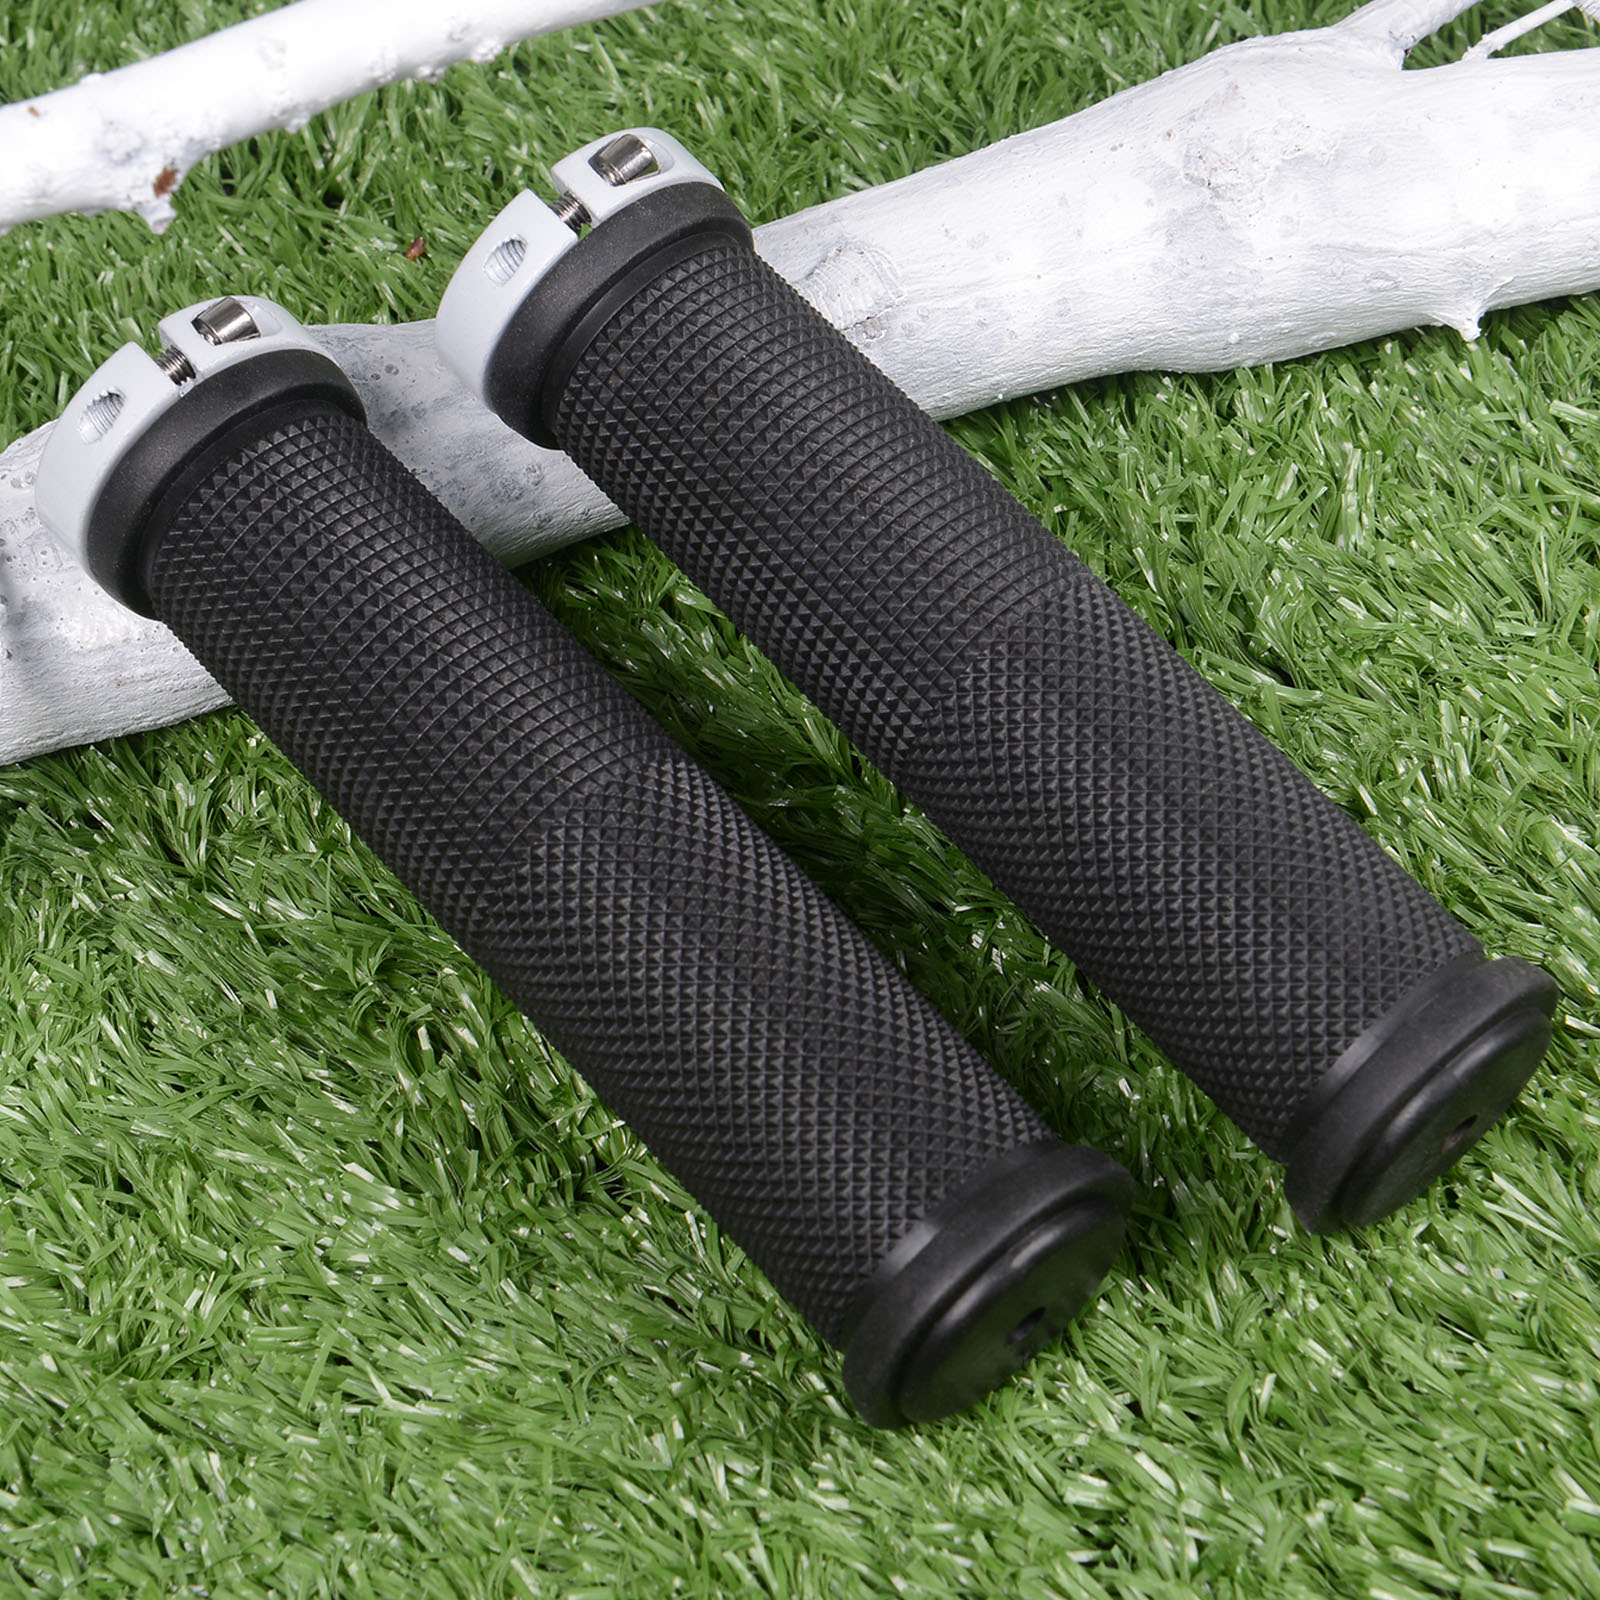 1 Pair Bicycle Single Side Lock Handle Cover Rubber Anti-Skid MTB Cycling Bike Handlebar Grips for Fixed Gear Mountain End Grips